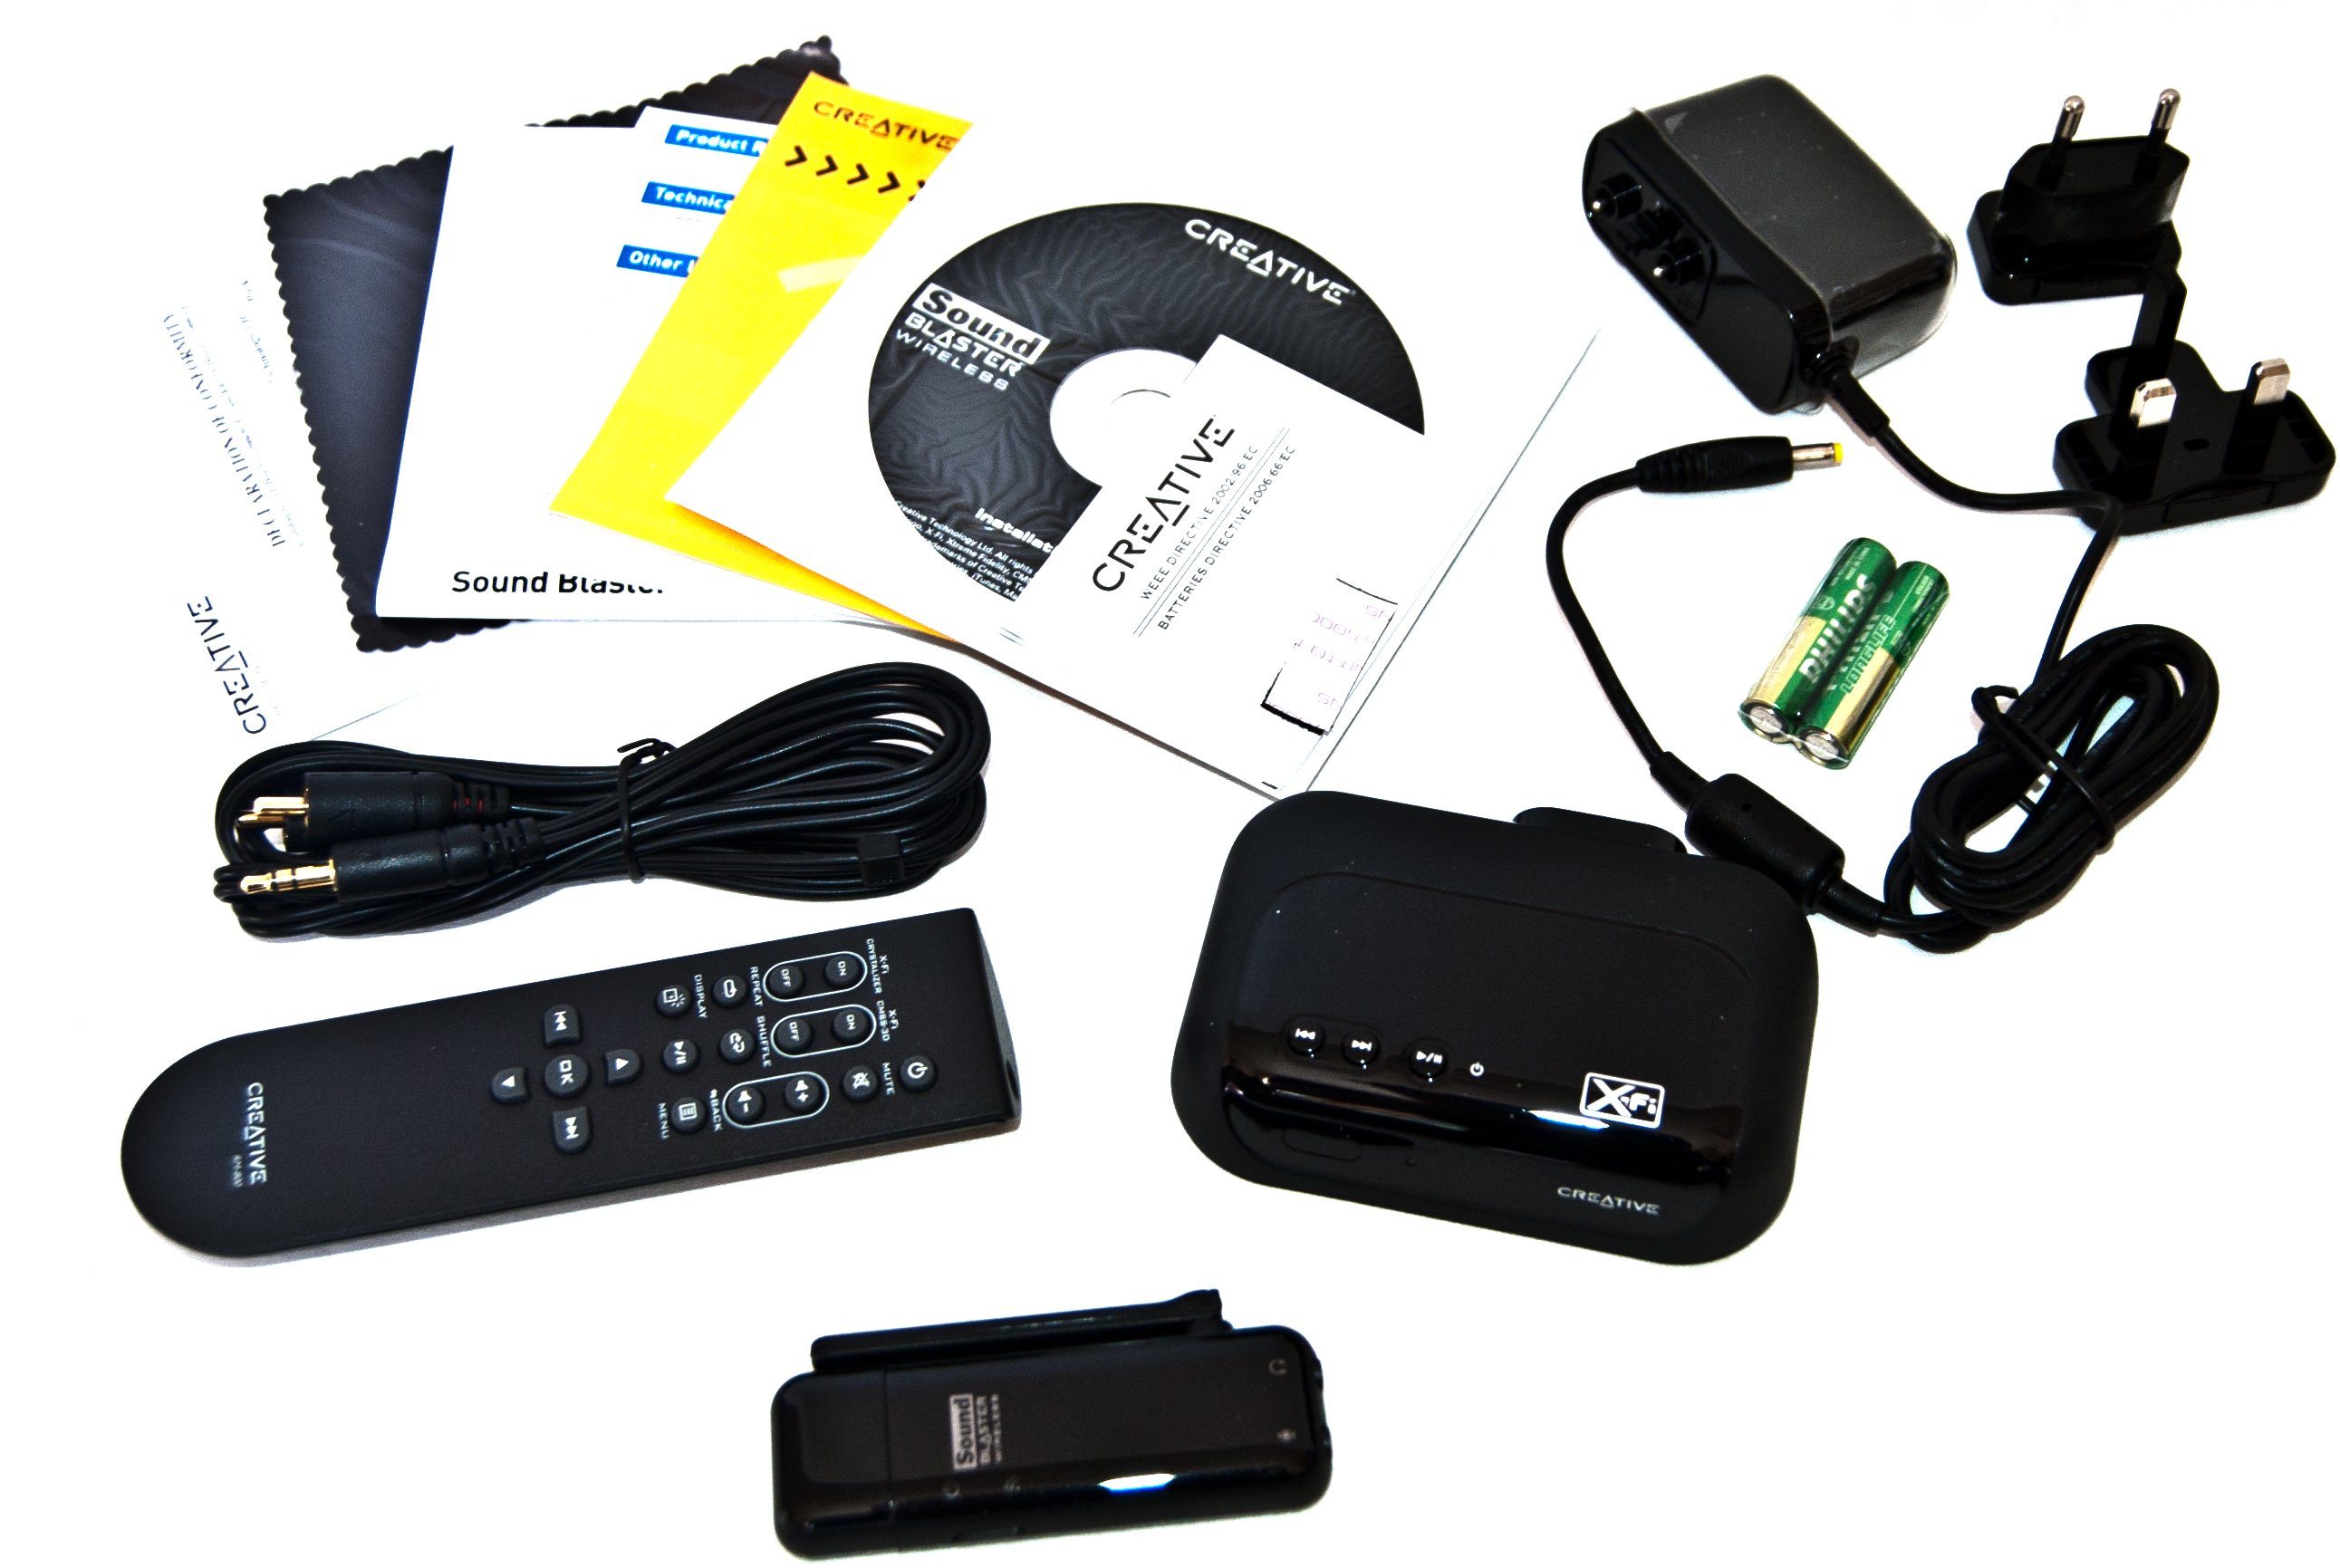 Creative Sound Blaster Wireless Music System - Package Contents